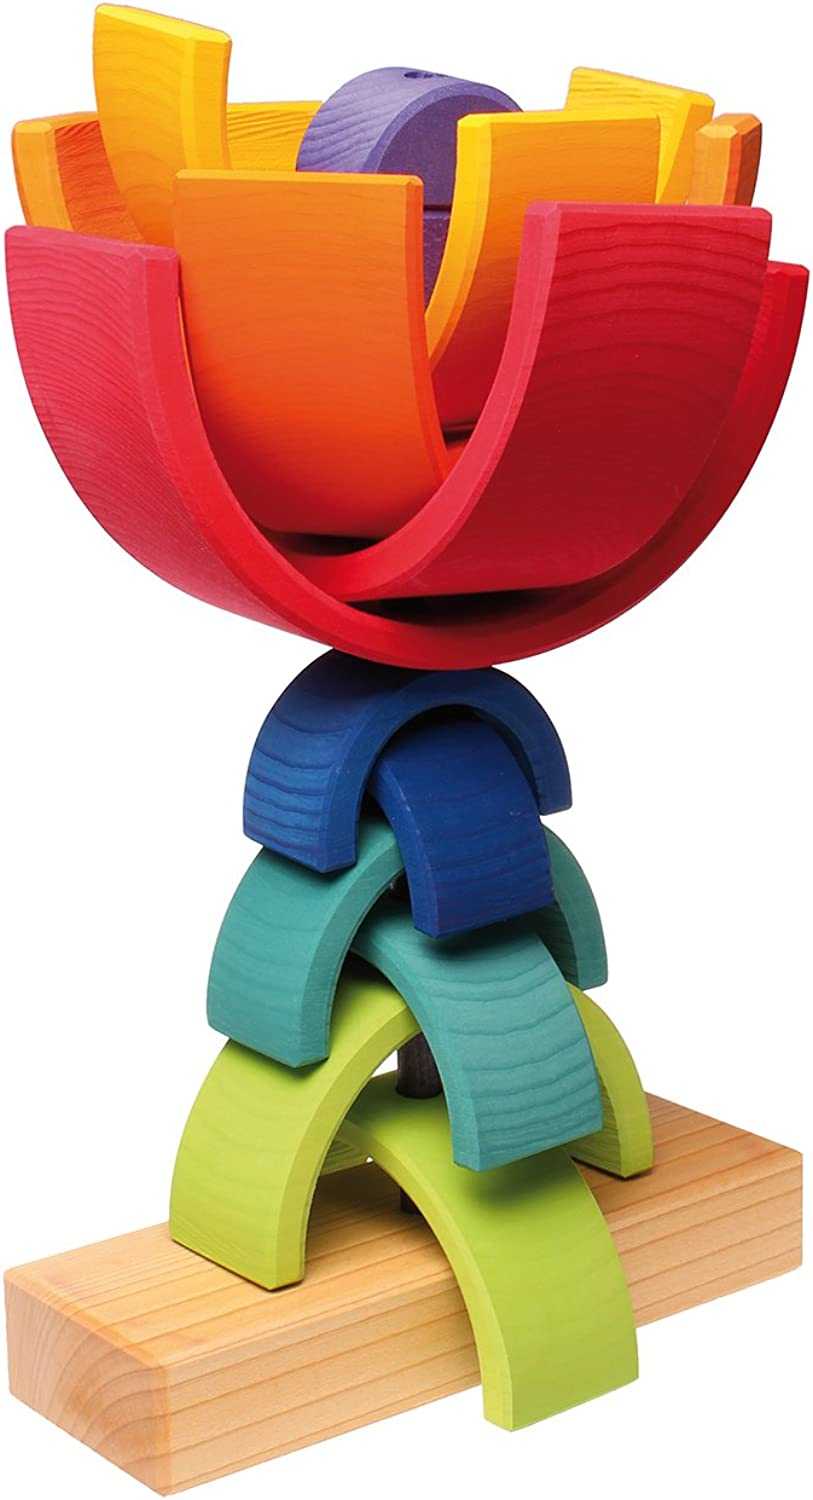 Grimm's Toys Stacking Tower Rainbow